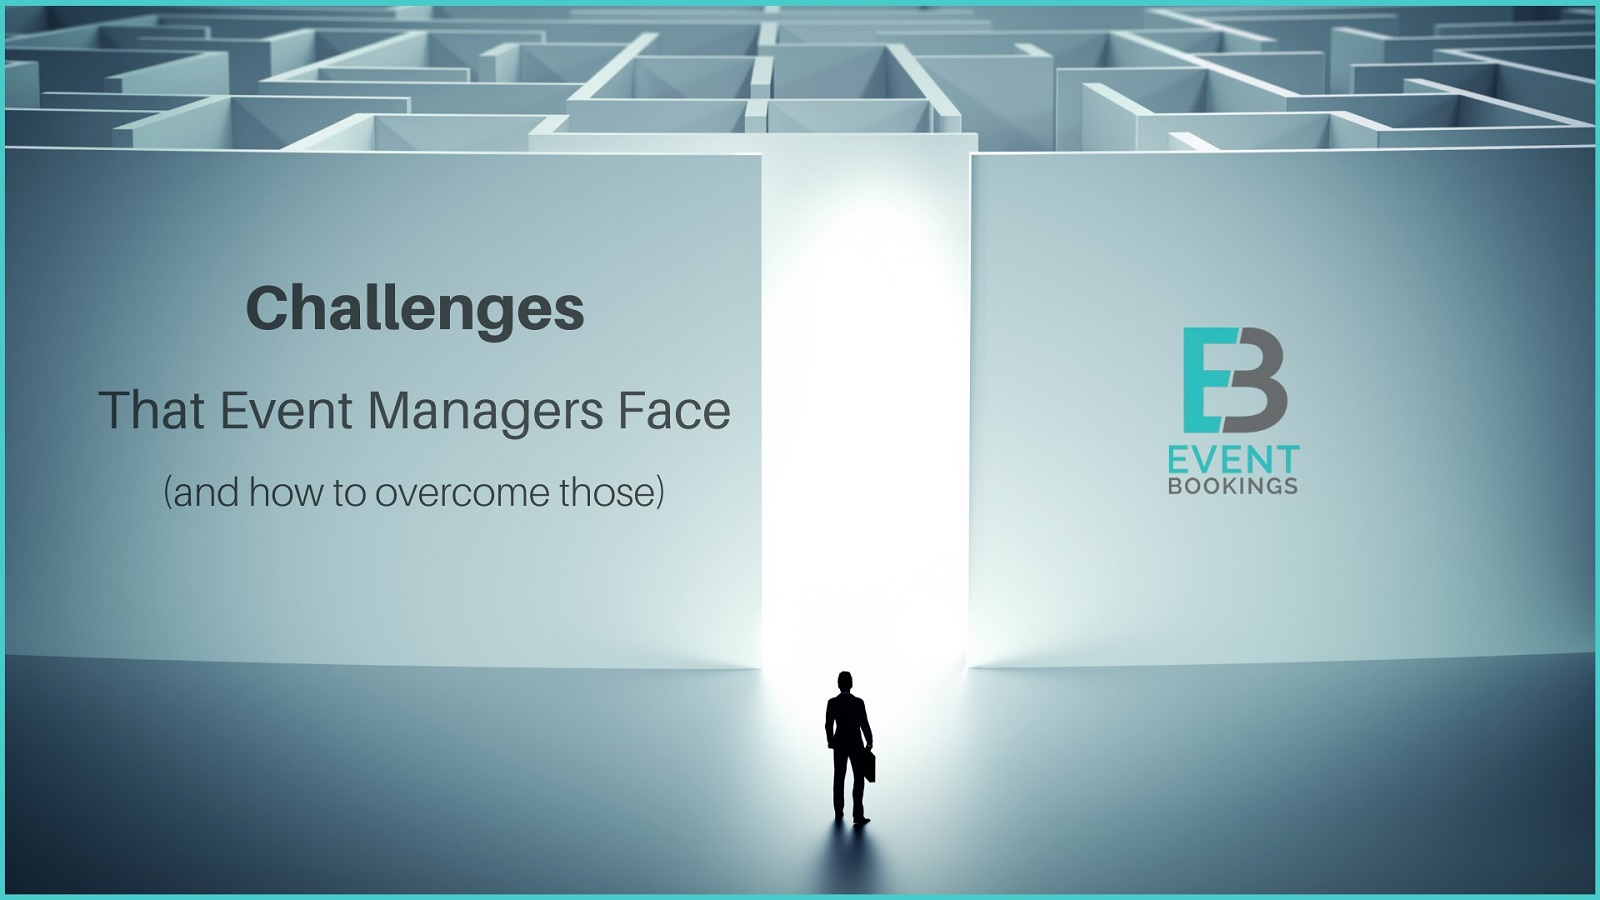 Challenges that event managers face - EventBookings